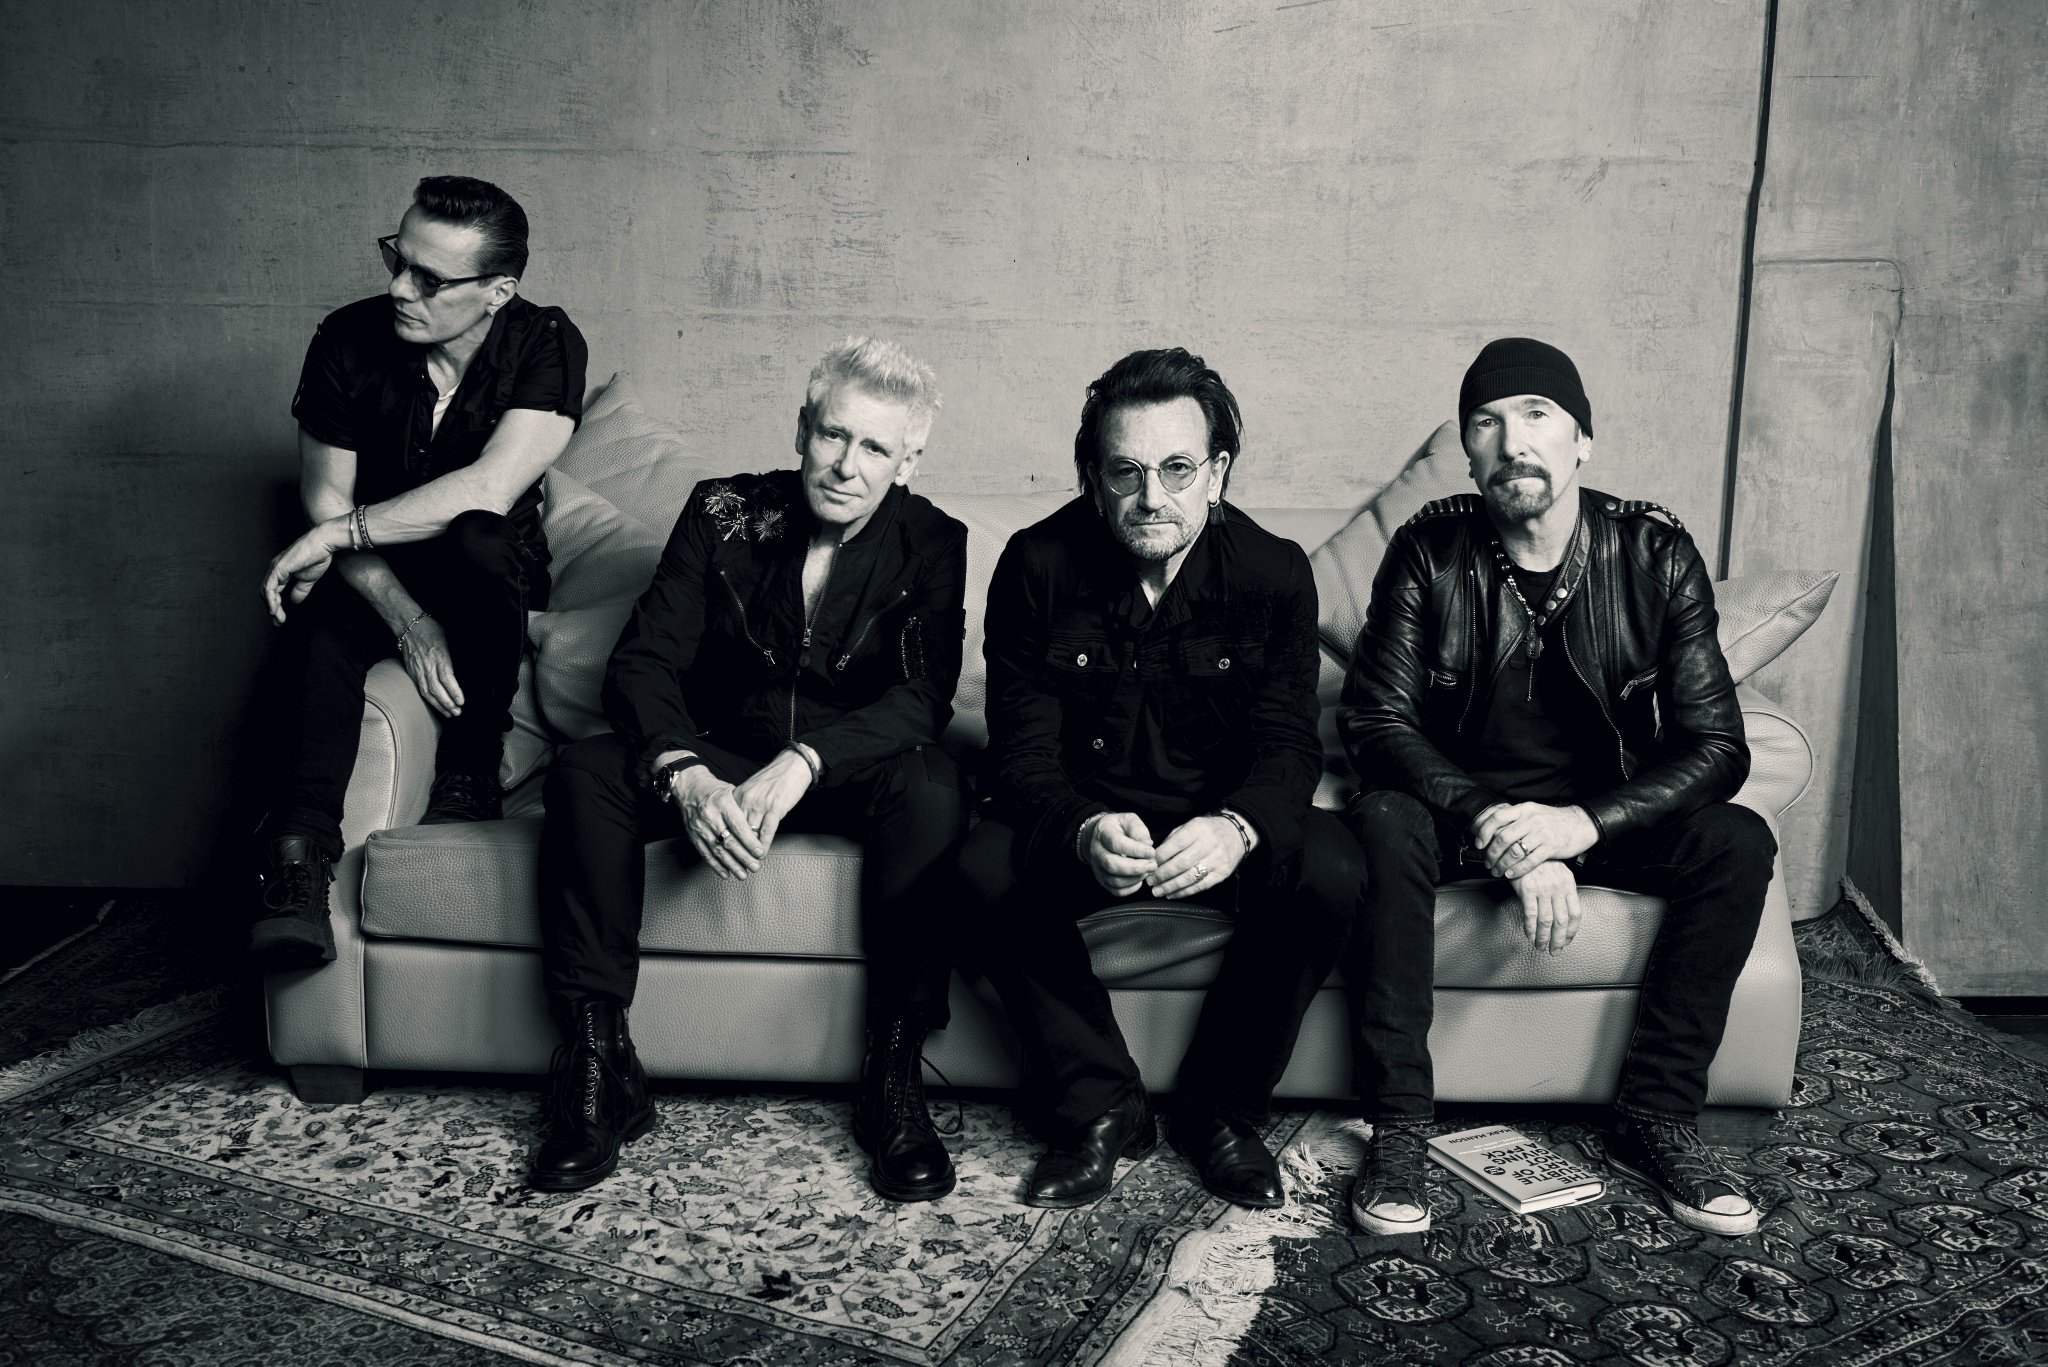 U2 are playing a show exclusively for SiriusXM subscribers at Harlem's Apollo Theater https://t.co/vK737fQGRU https://t.co/X3c5jWuKdJ